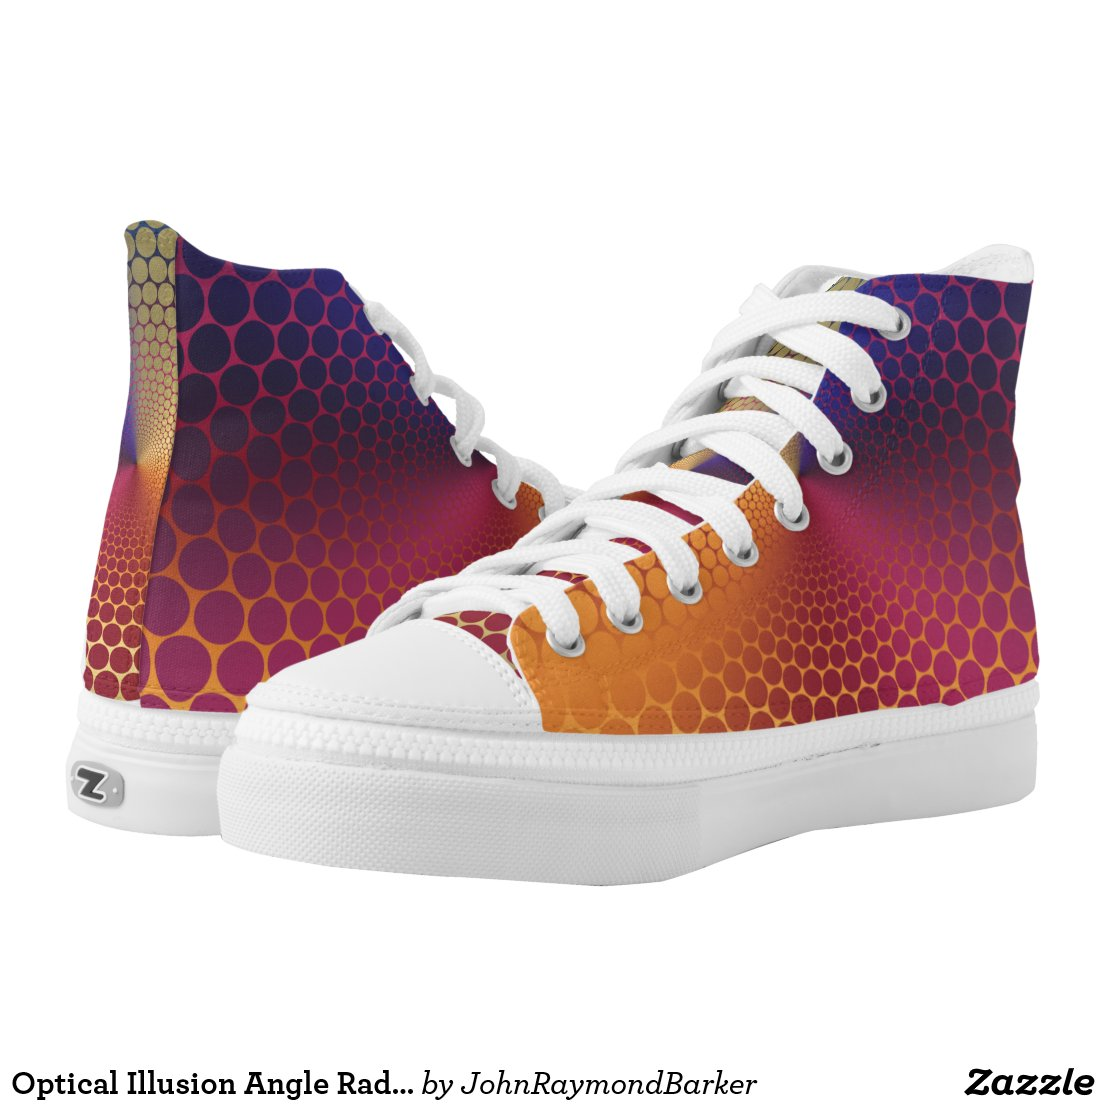 Optical Illusion Angle Radiant Gradient High-Top Sneakers